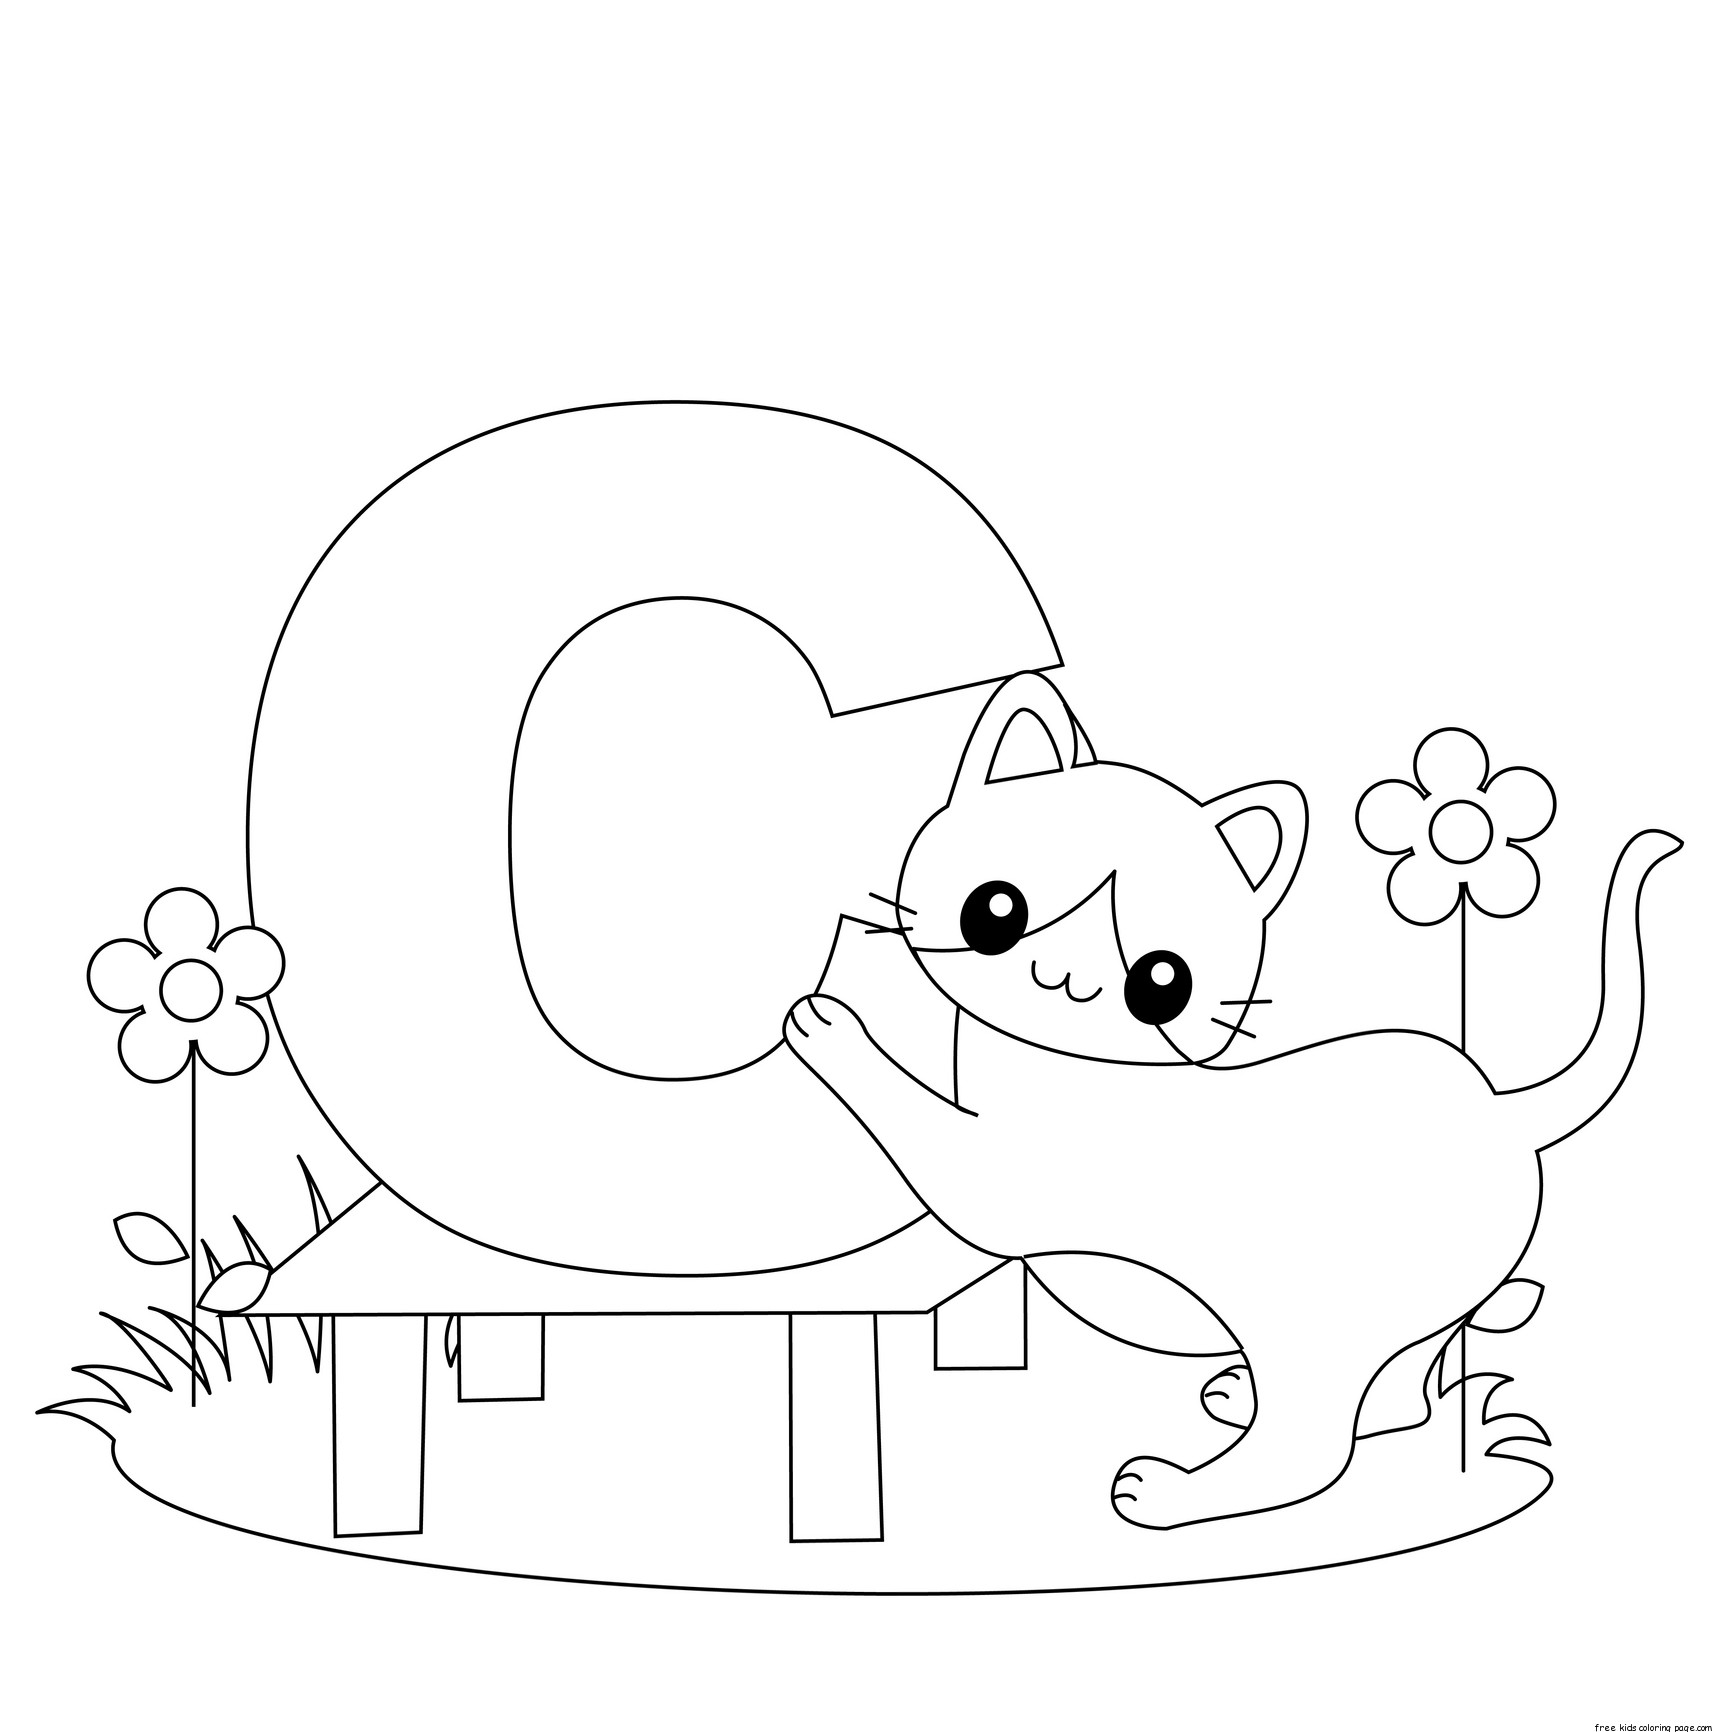 c coloring worksheet letter c coloring pages to download and print for free c coloring worksheet